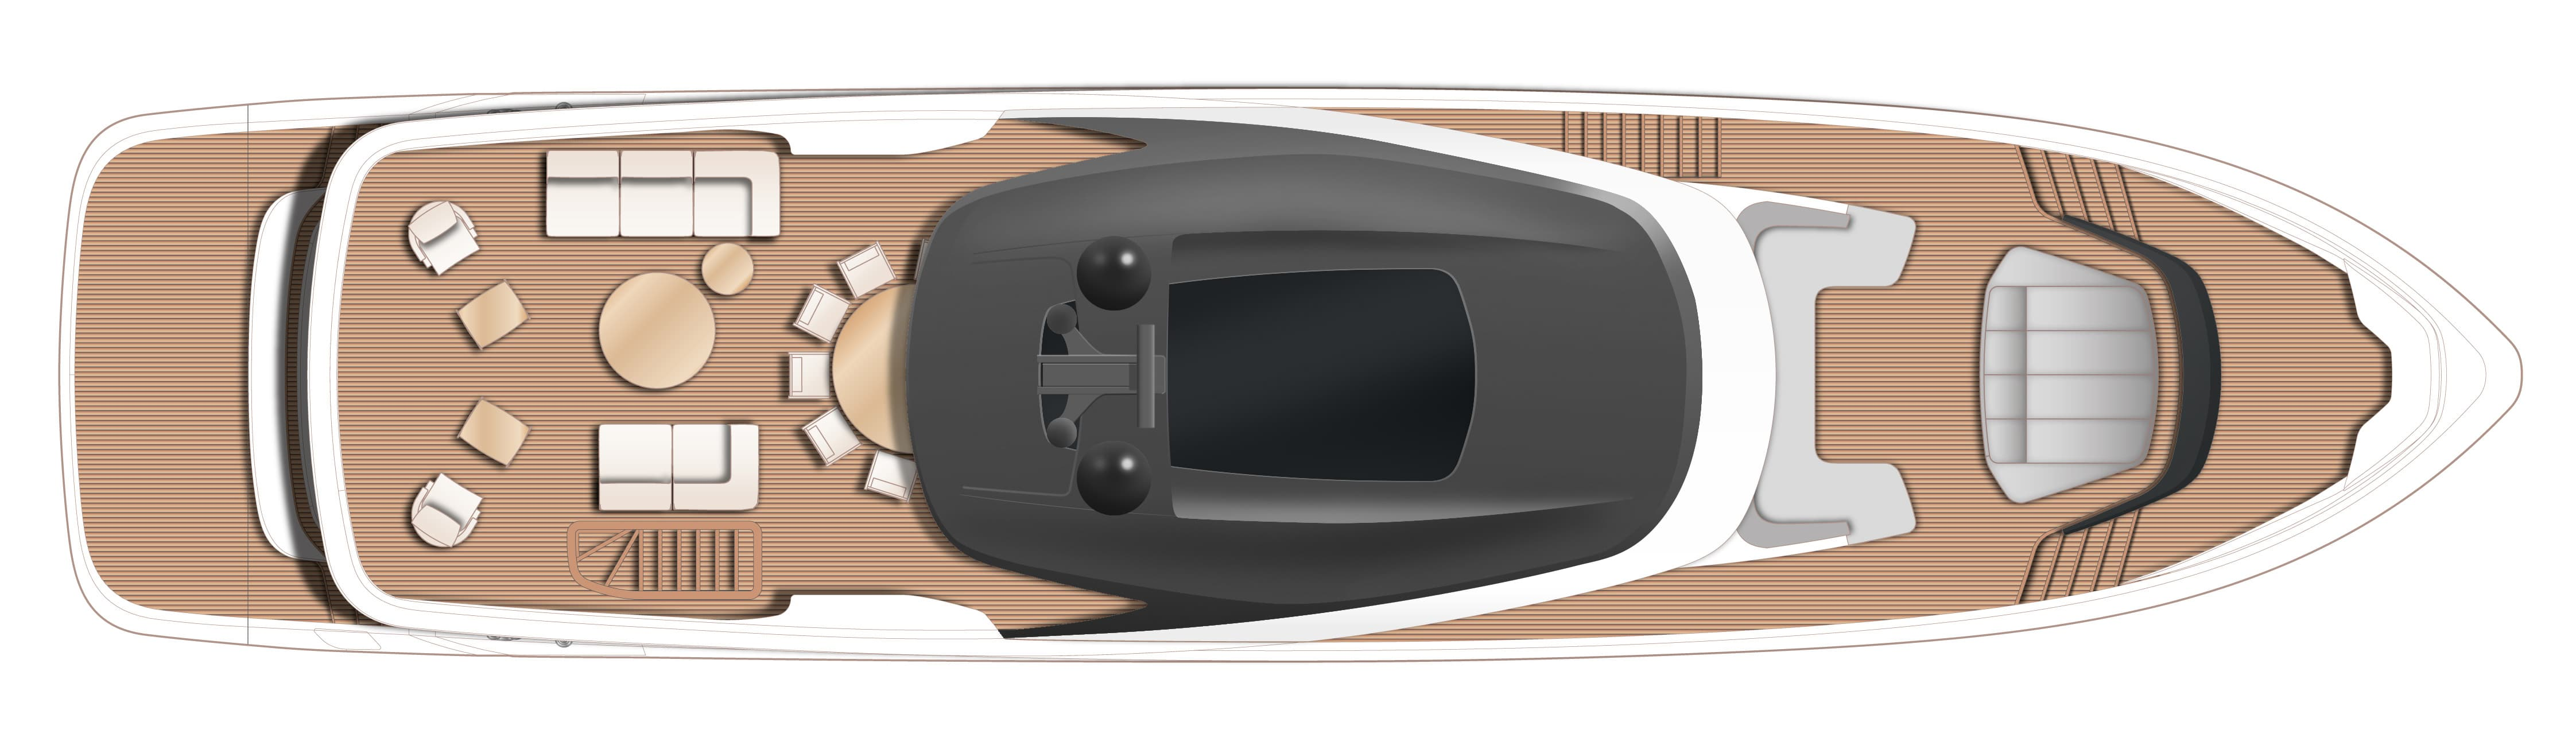 Princess Yachts X95 layout